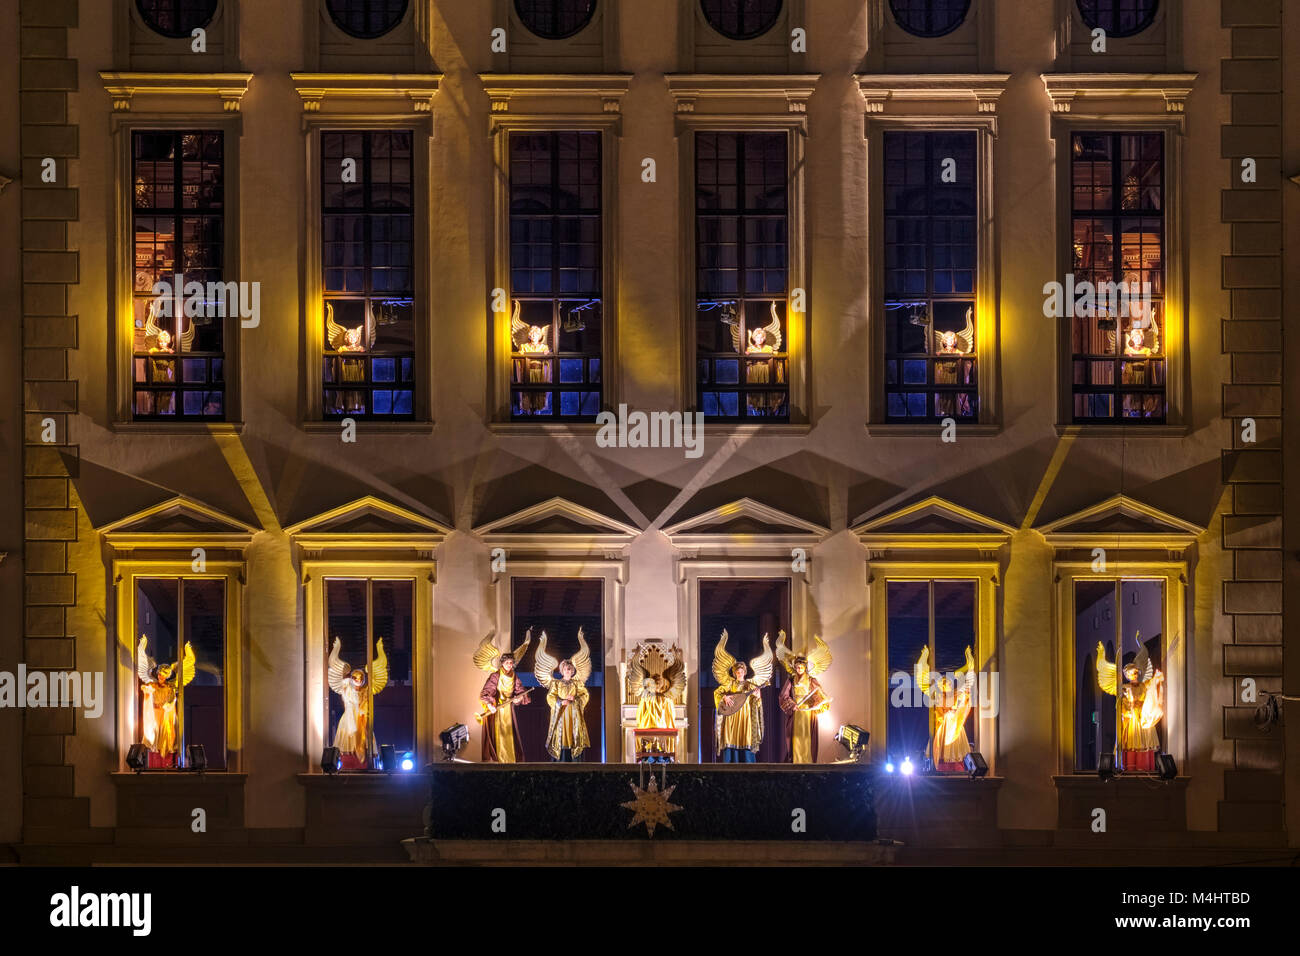 Illuminated angelic play at the town hall by night, Christmas market, Augsburg, Swabia, Bavaria, Germany - Stock Image